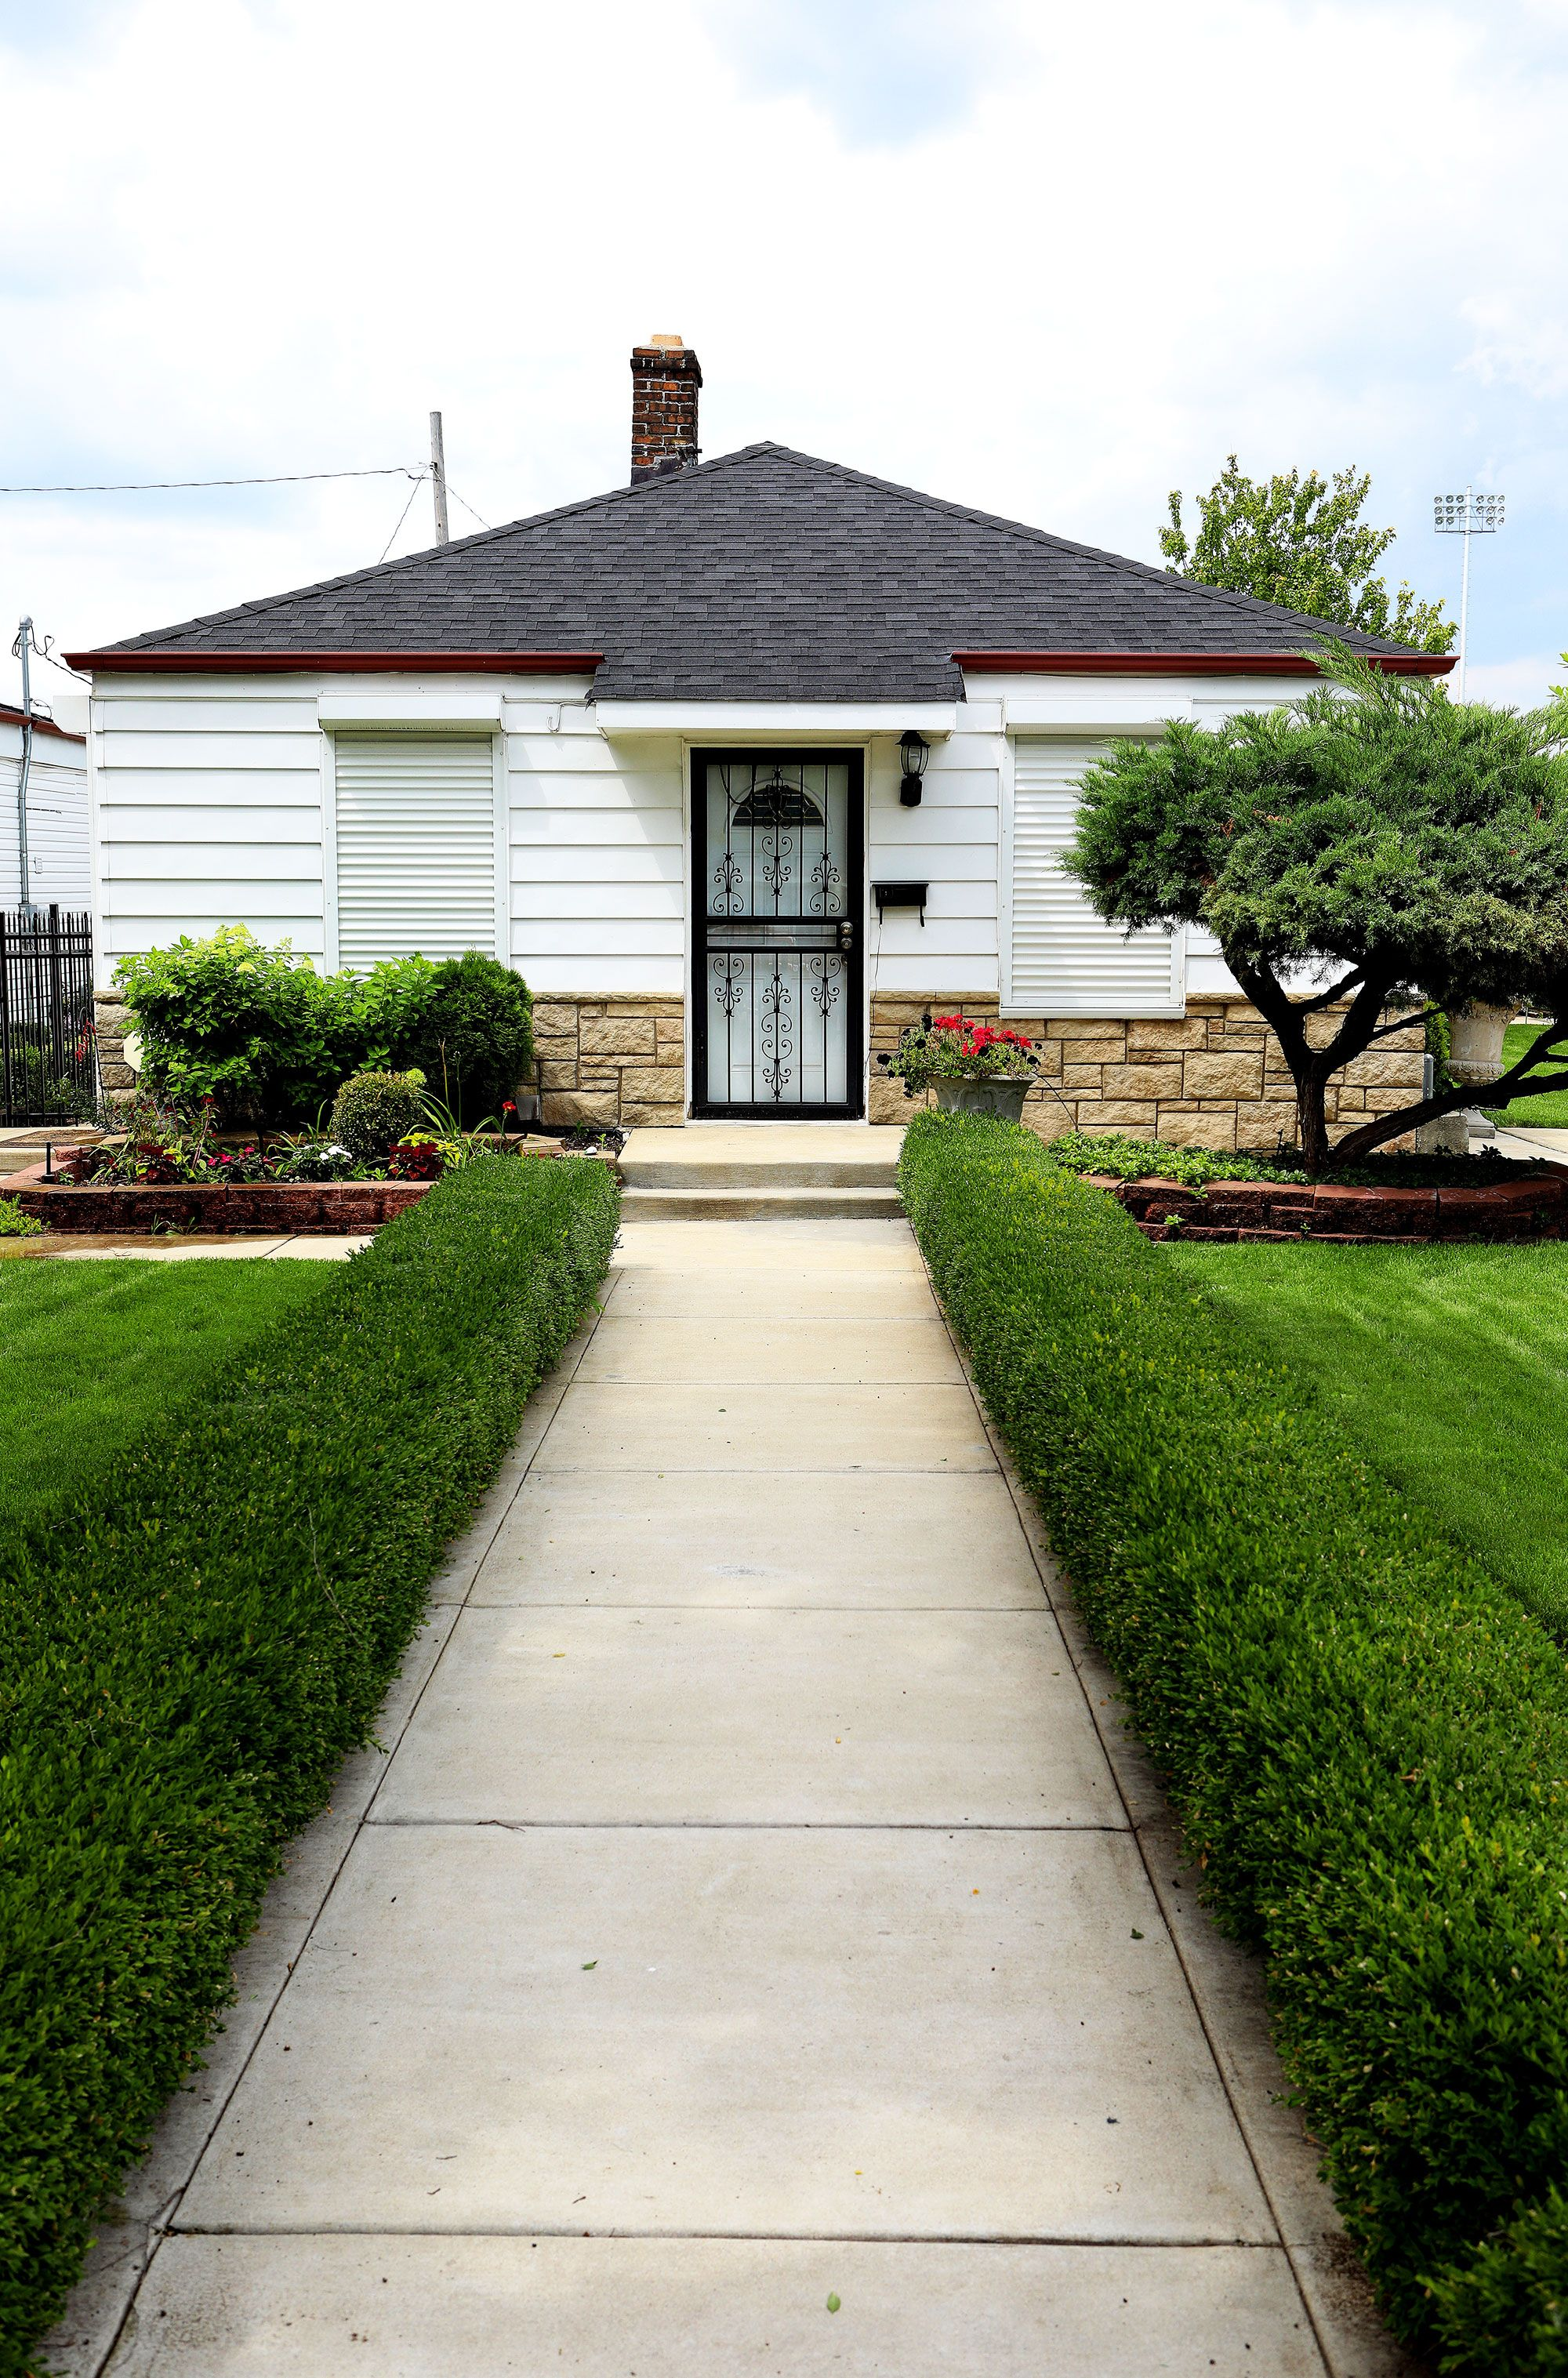 You Can Buy A House For $32 Through Indiana's Dollar House Program